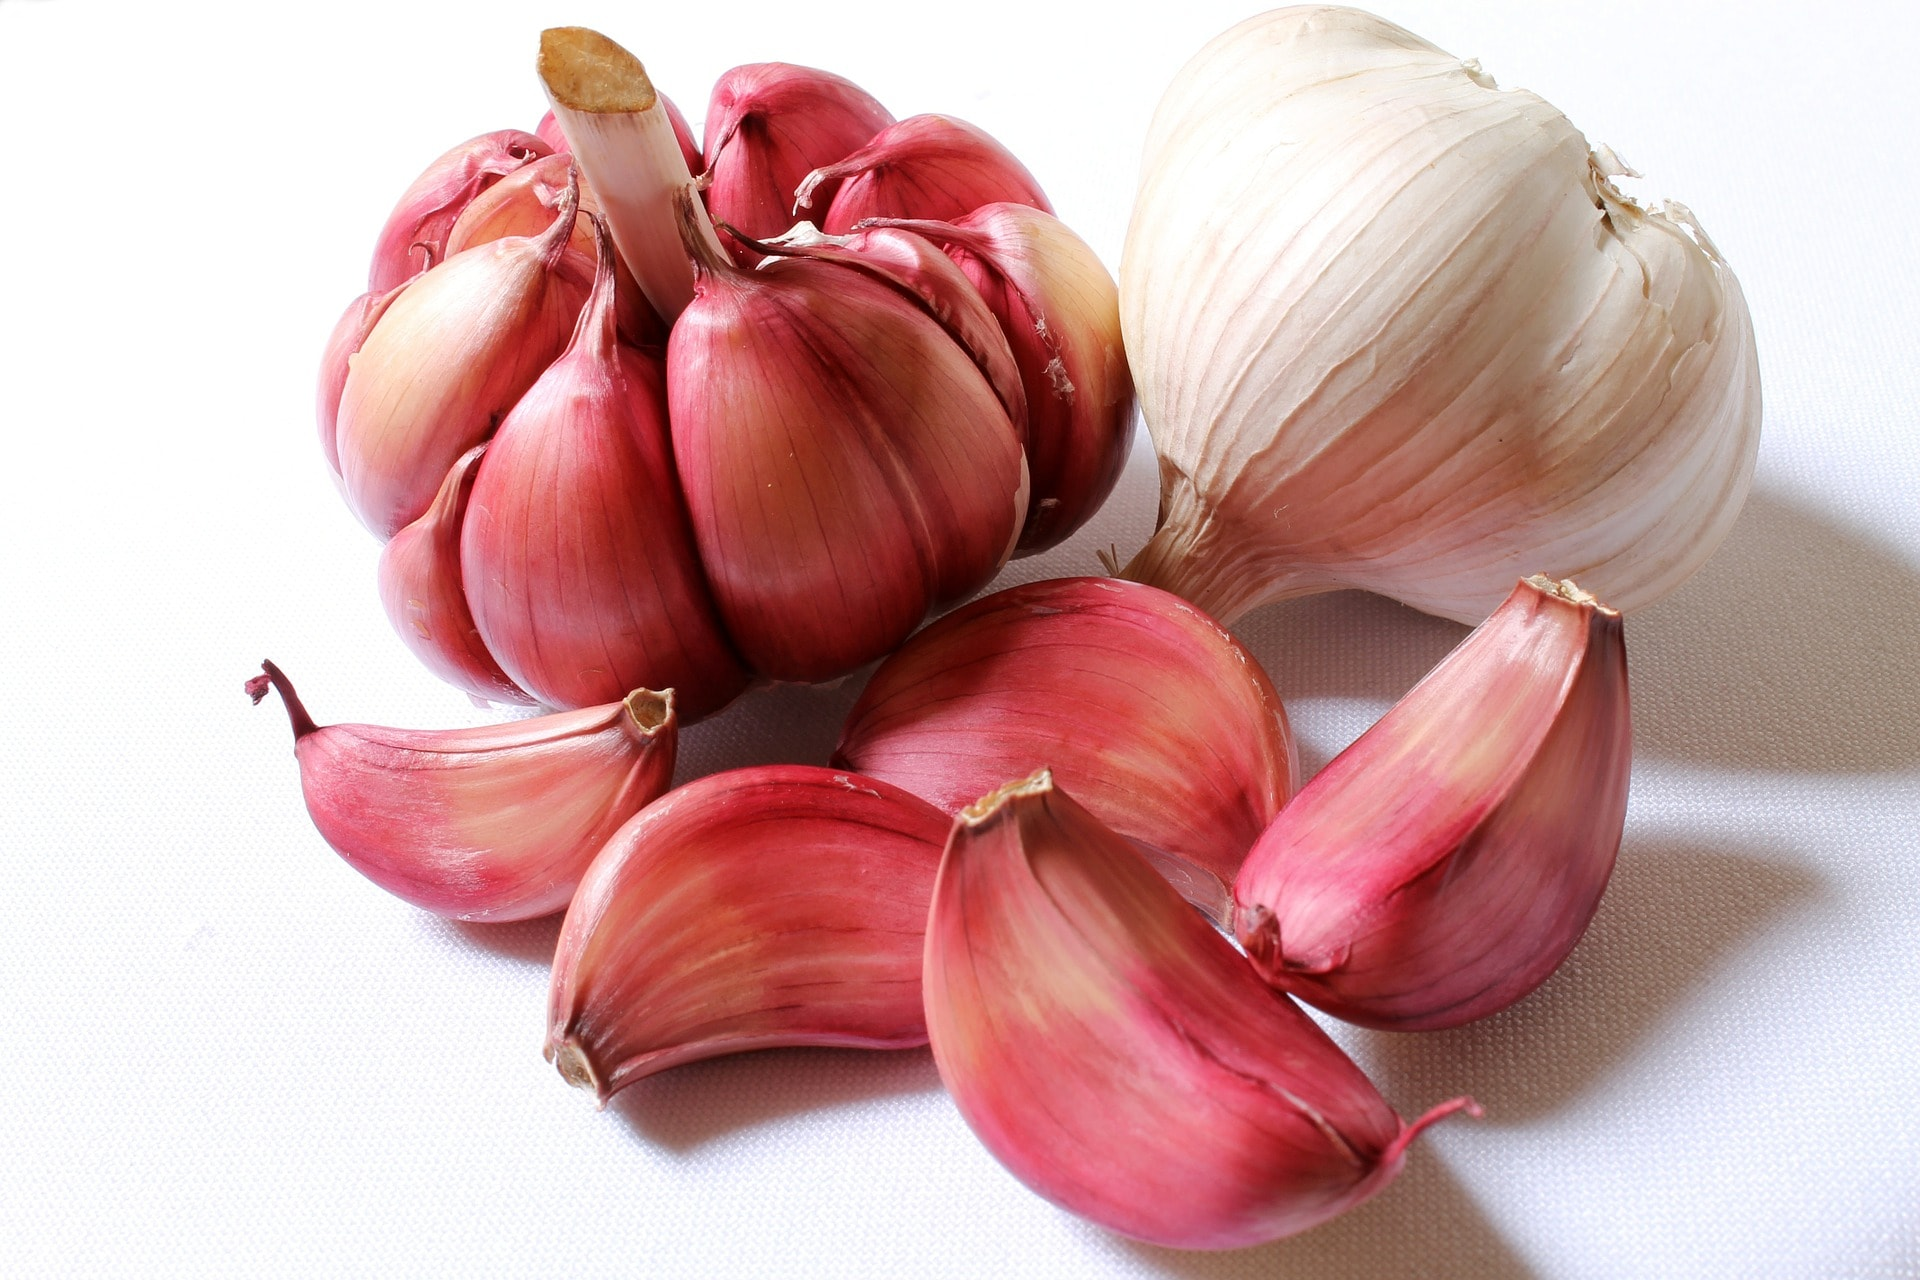 Benefits of Eating Garlic Empty Stomach